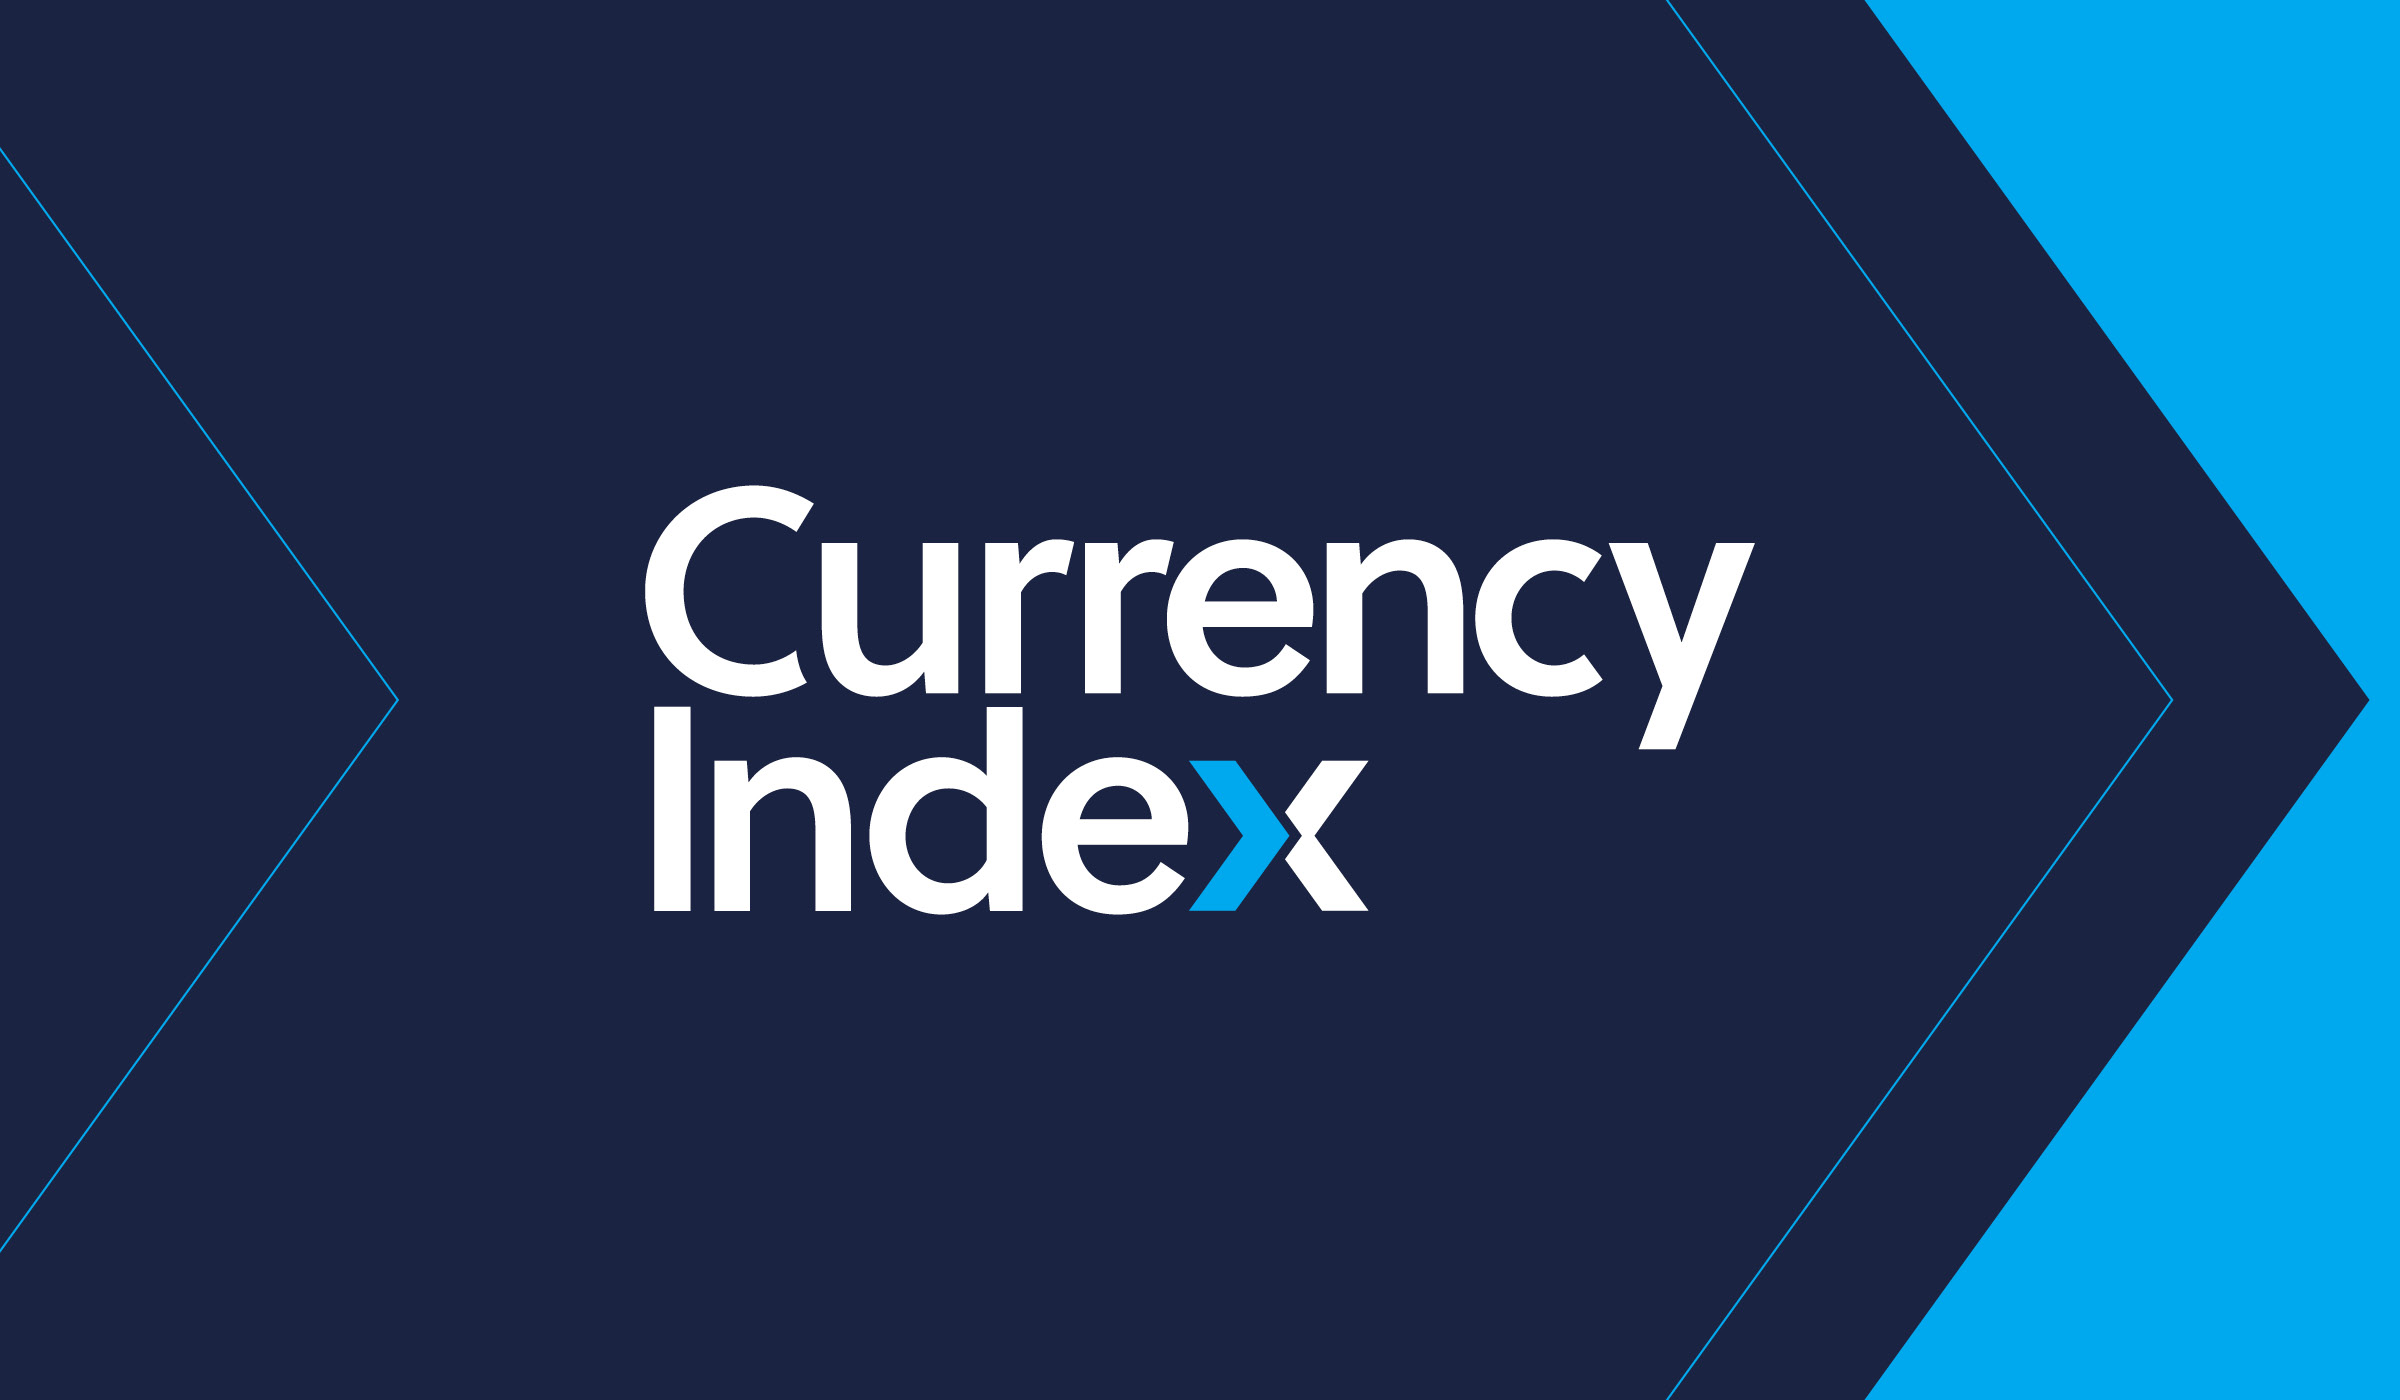 Currency Index logo design